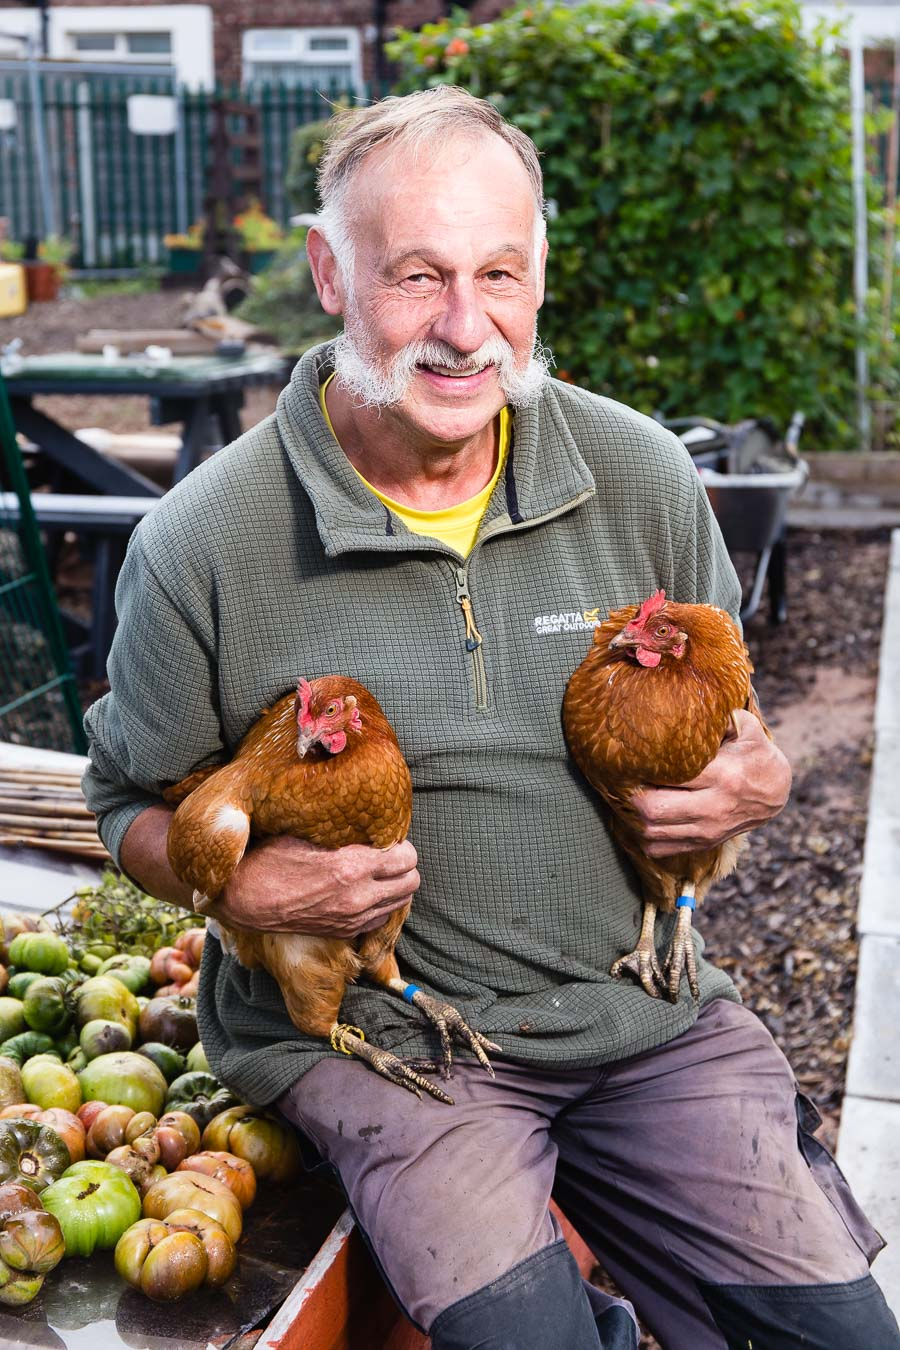 Organic gardener with handlebar mustoch in his allotment holding two chickens, one in each hand, for Liverpool Football Club